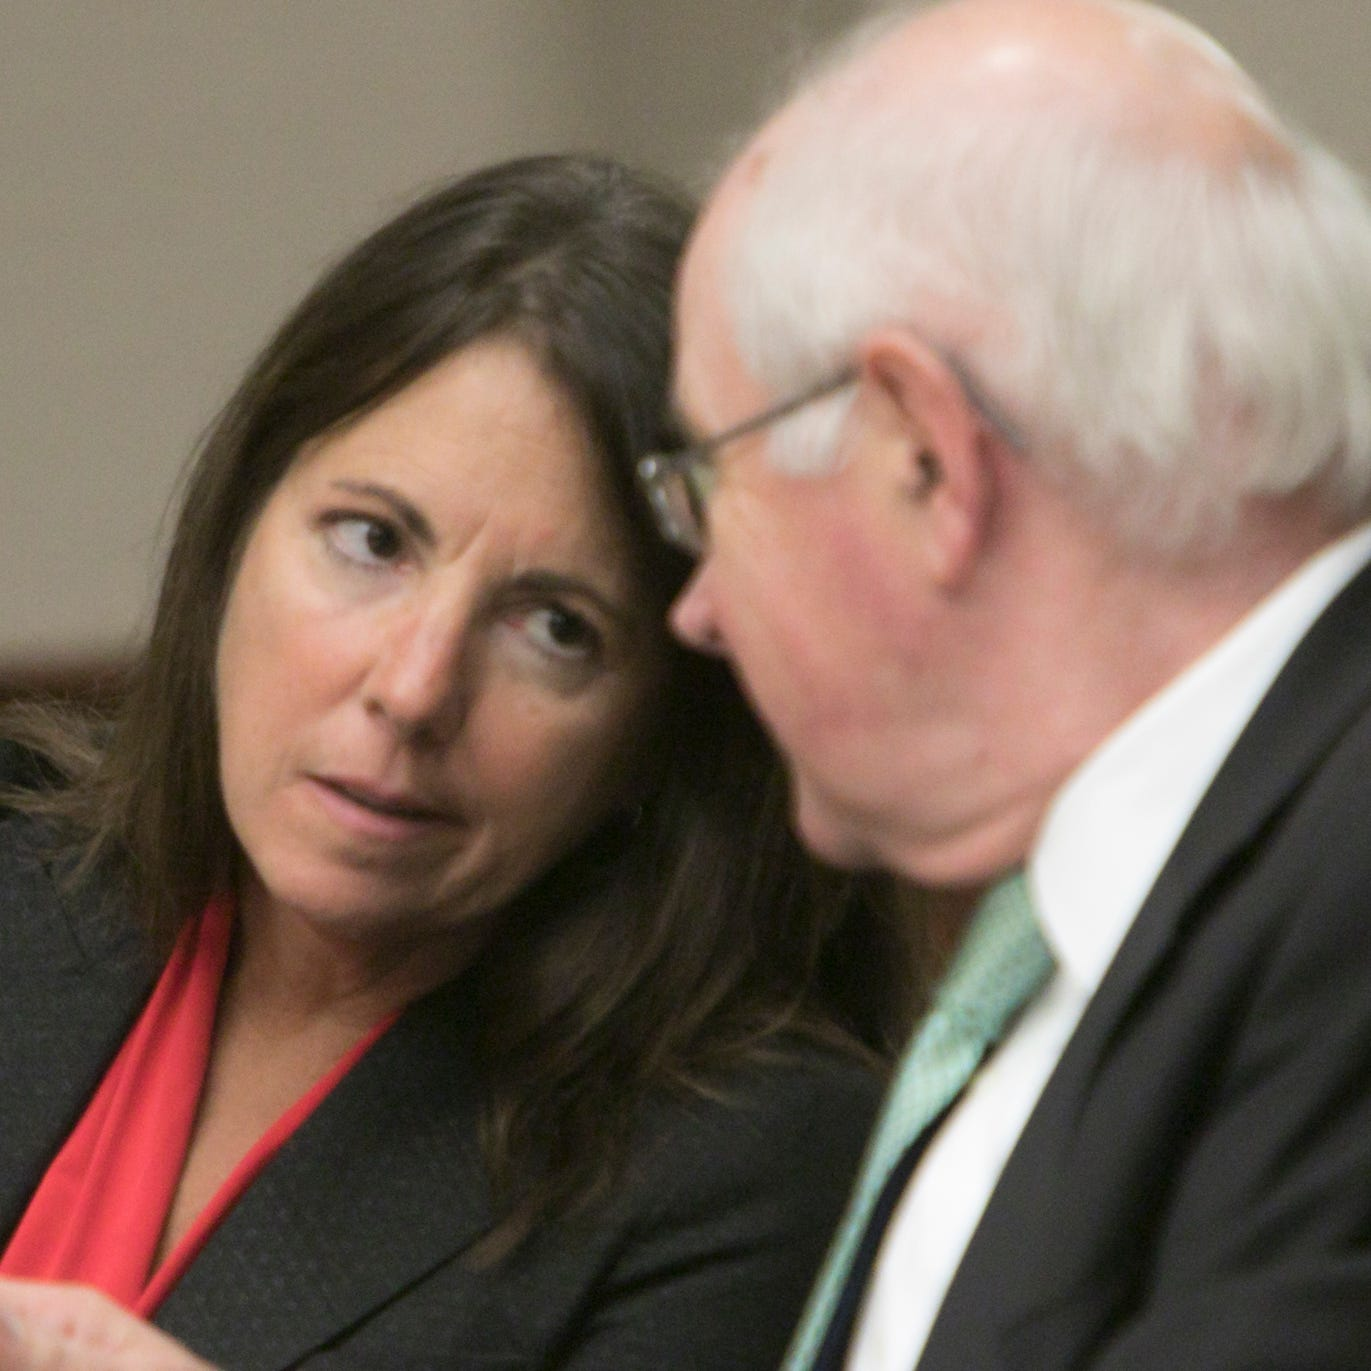 Livingston County Judge Theresa Brennan files motion to remove Judicial Tenure Commission